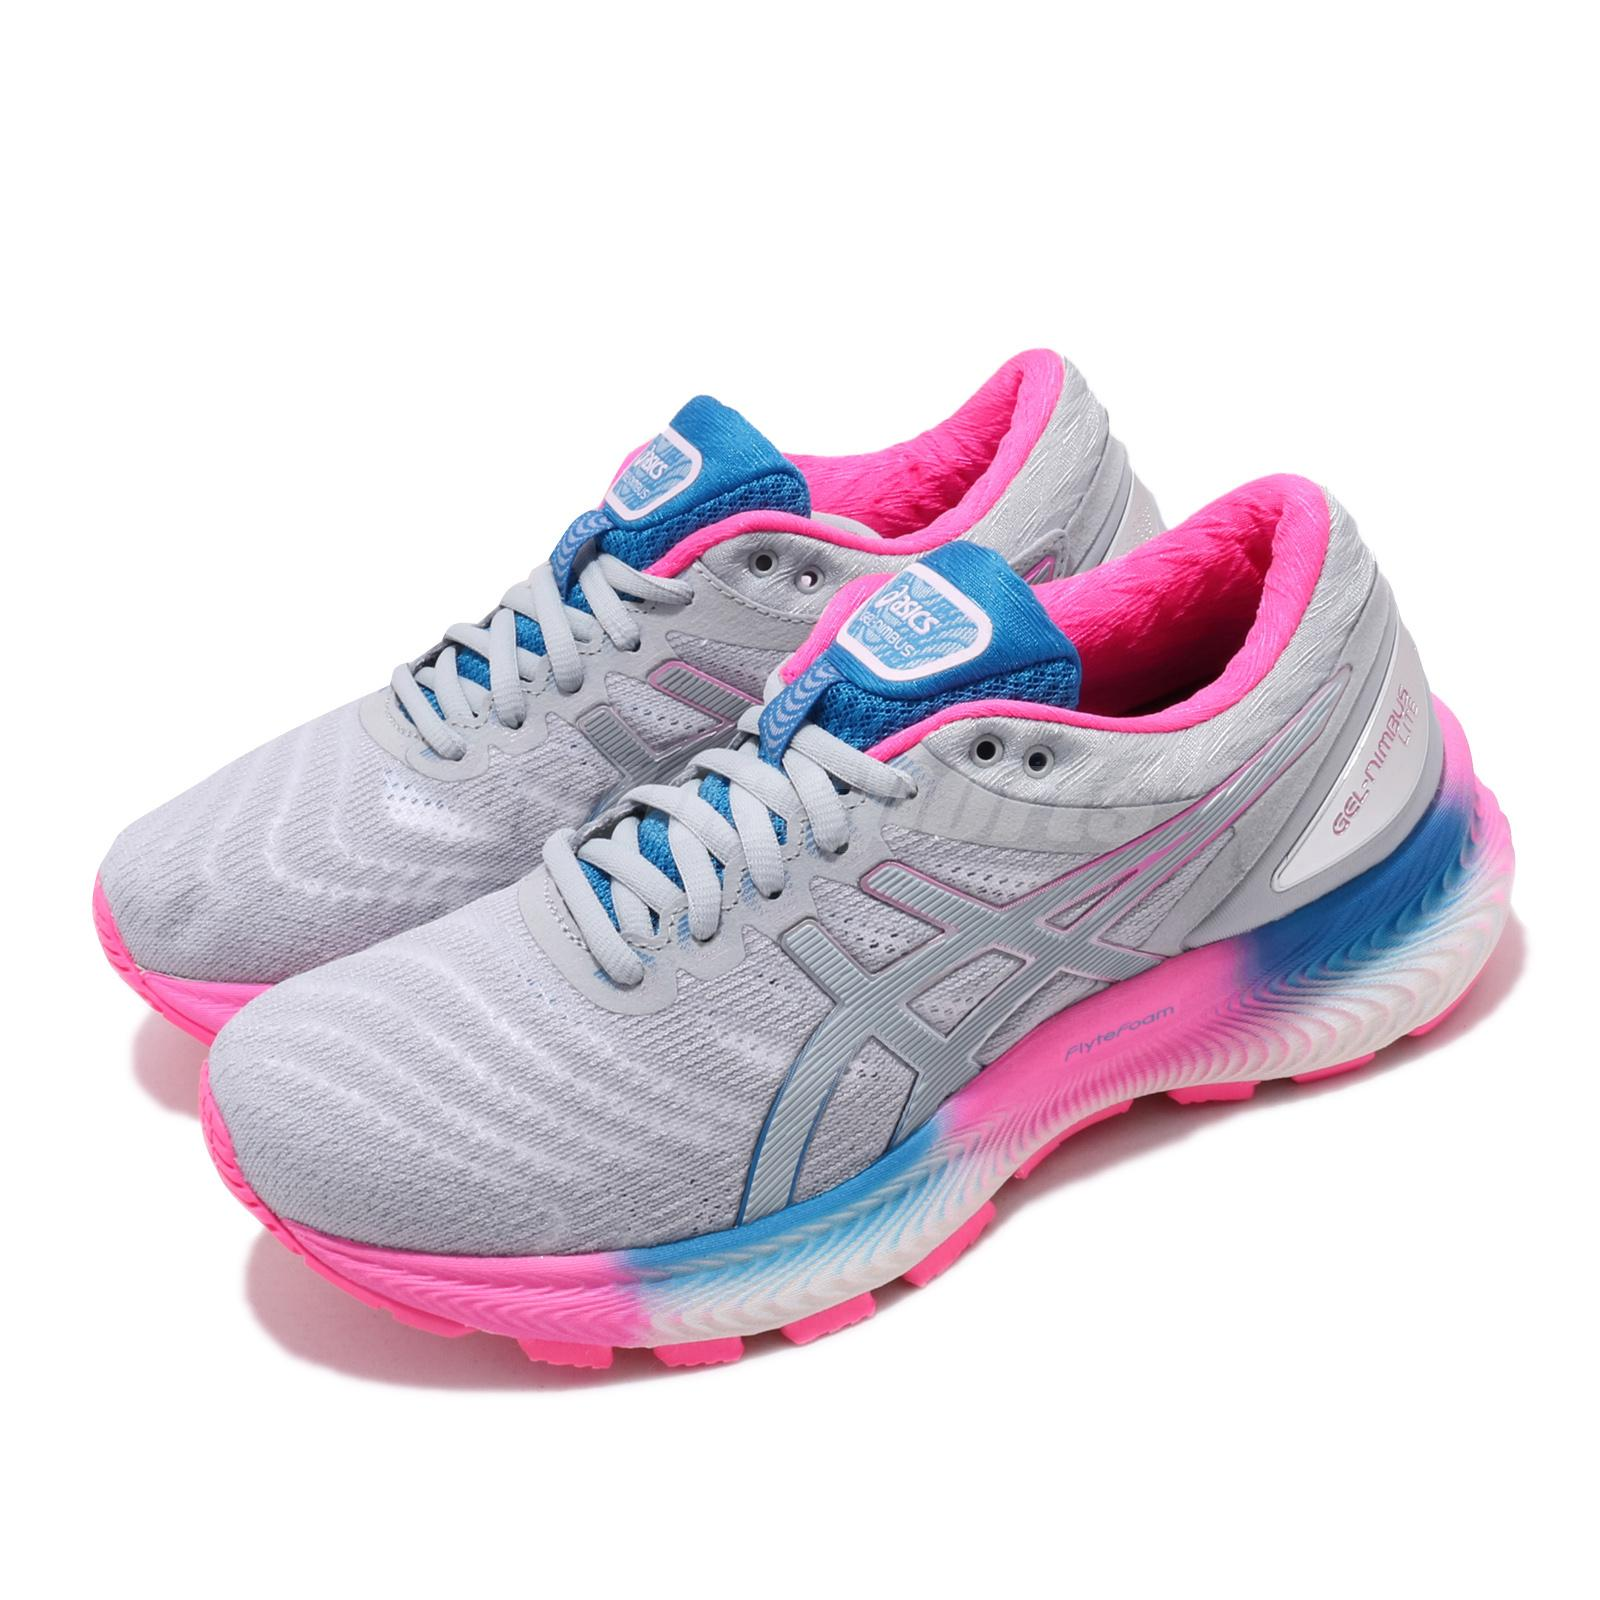 Details about Asics Gel-Nimbus 22 Lite Grey Pink Blue Womens Road Running  Shoes 1012A667-100